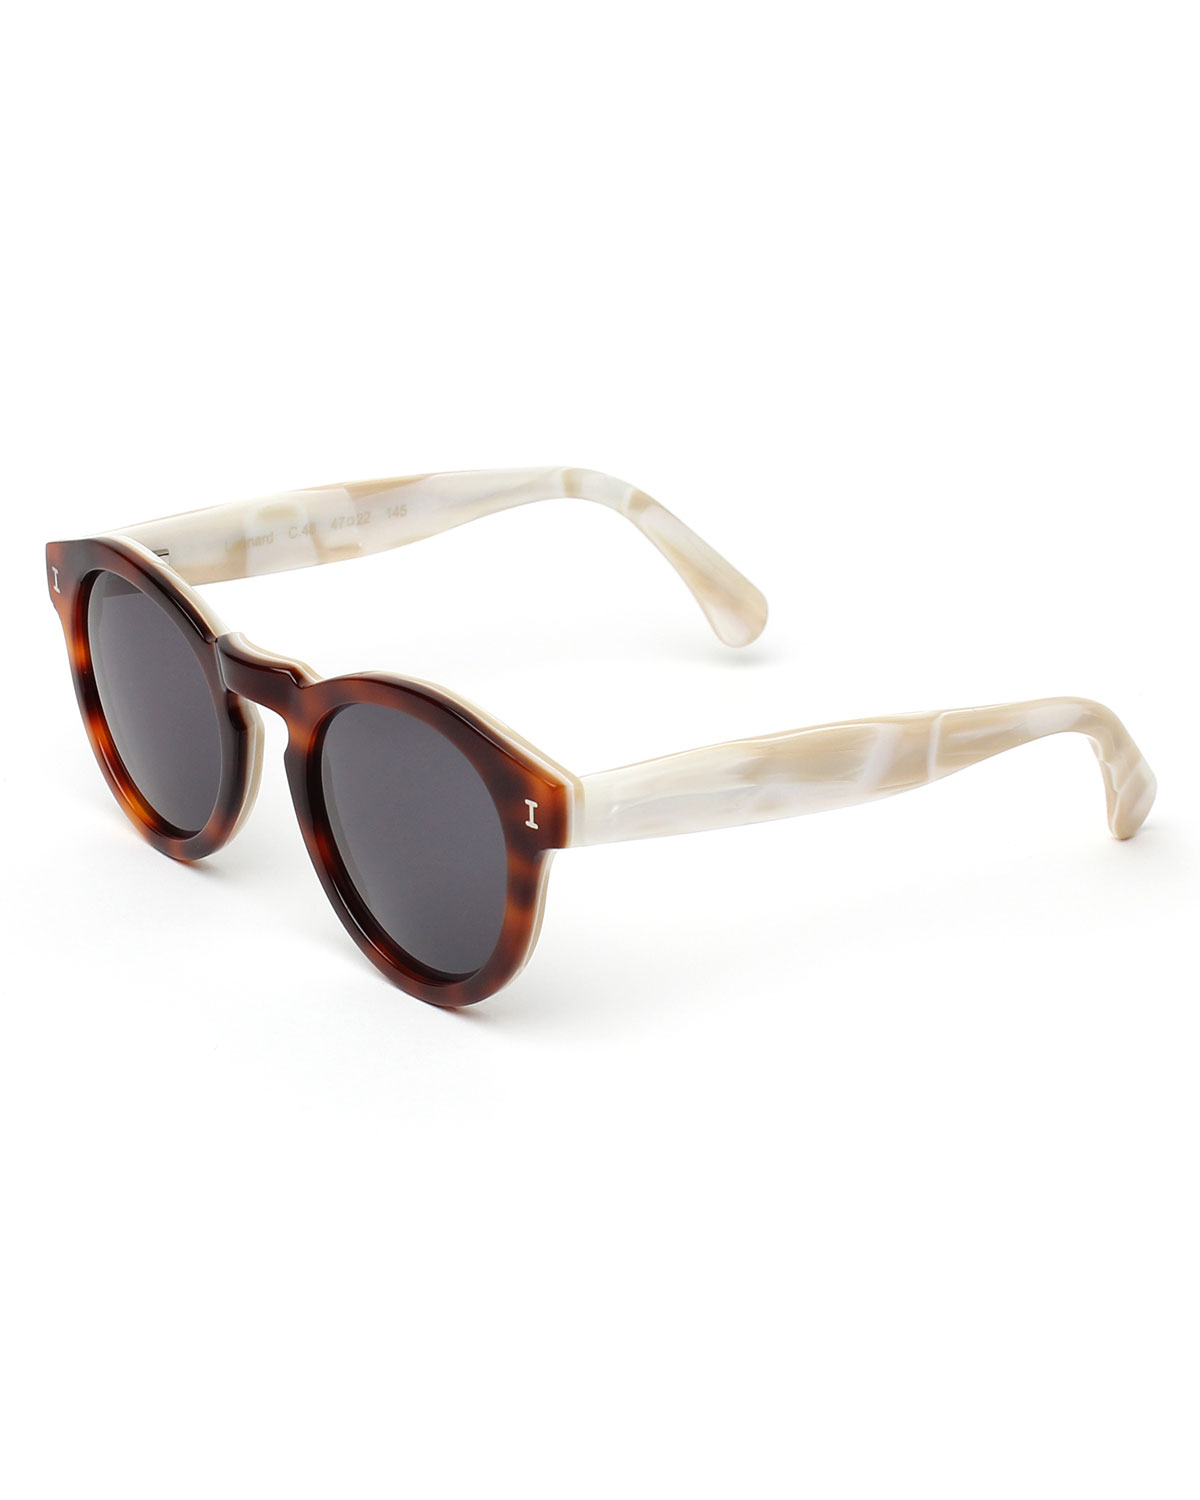 Leonard Round Two-Tone Sunglasses, Tortoise/Cream